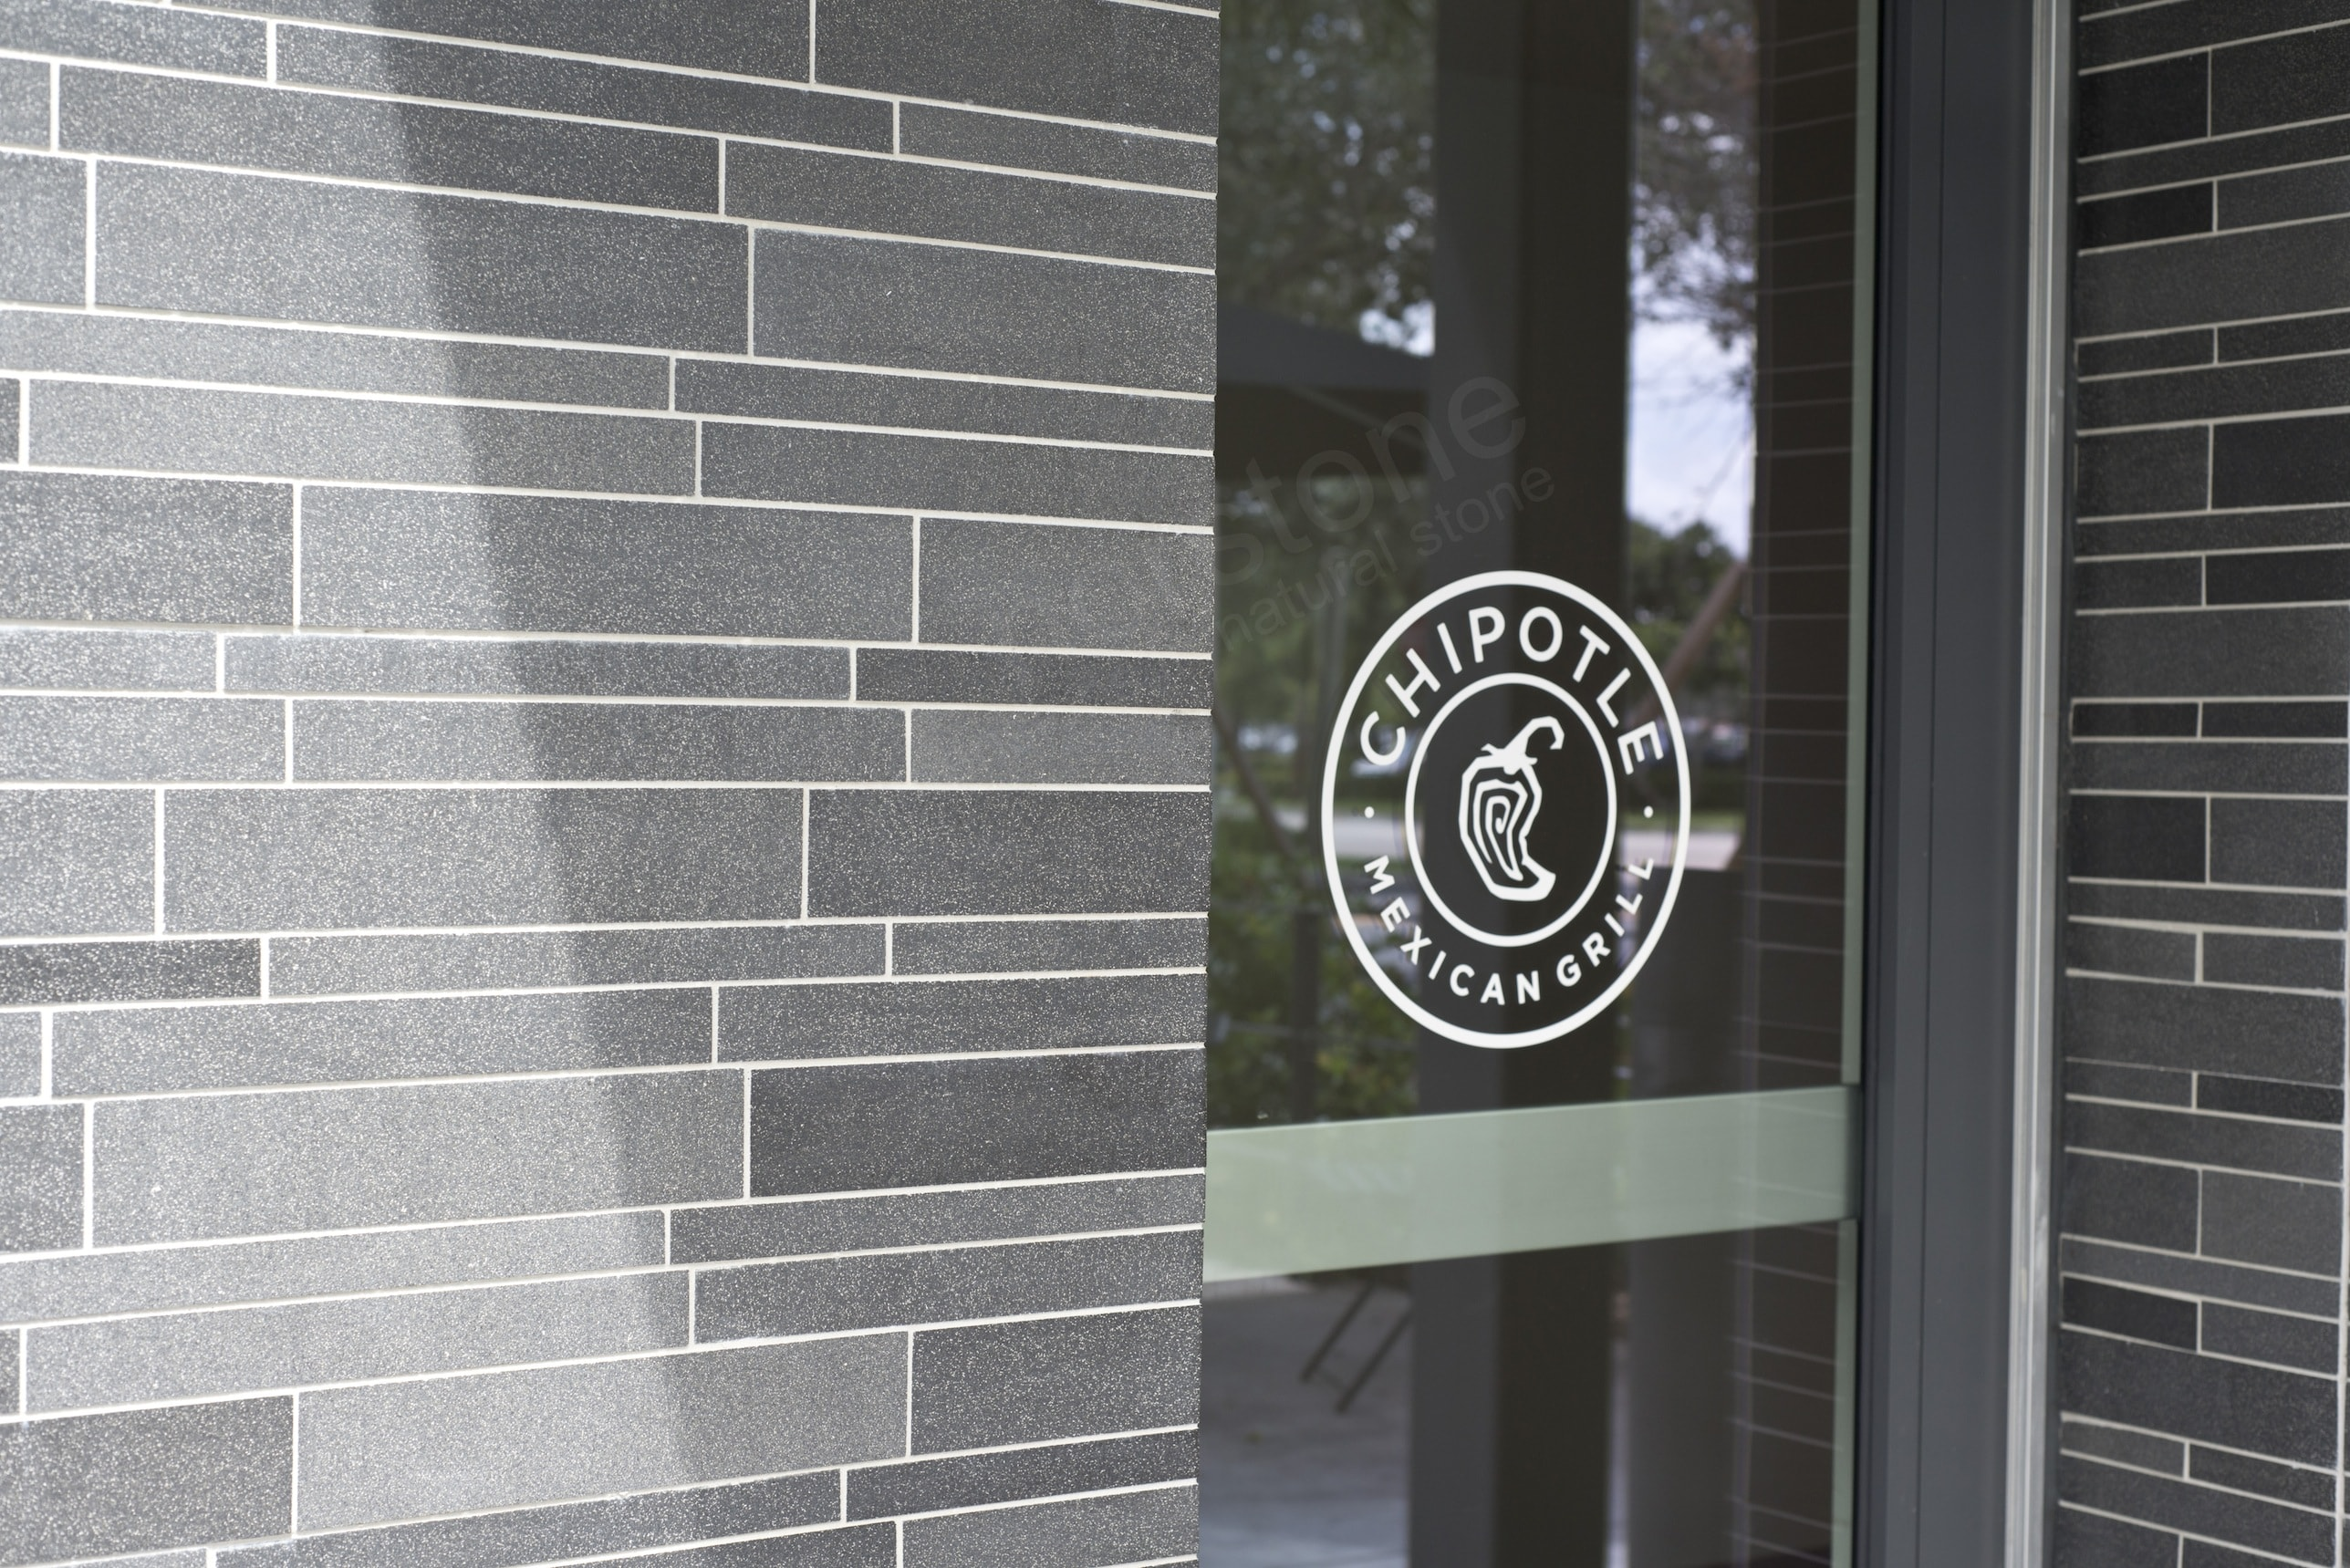 Basalt Mosaic Interlocking Tile with White Grout complementing Chipotle Logo